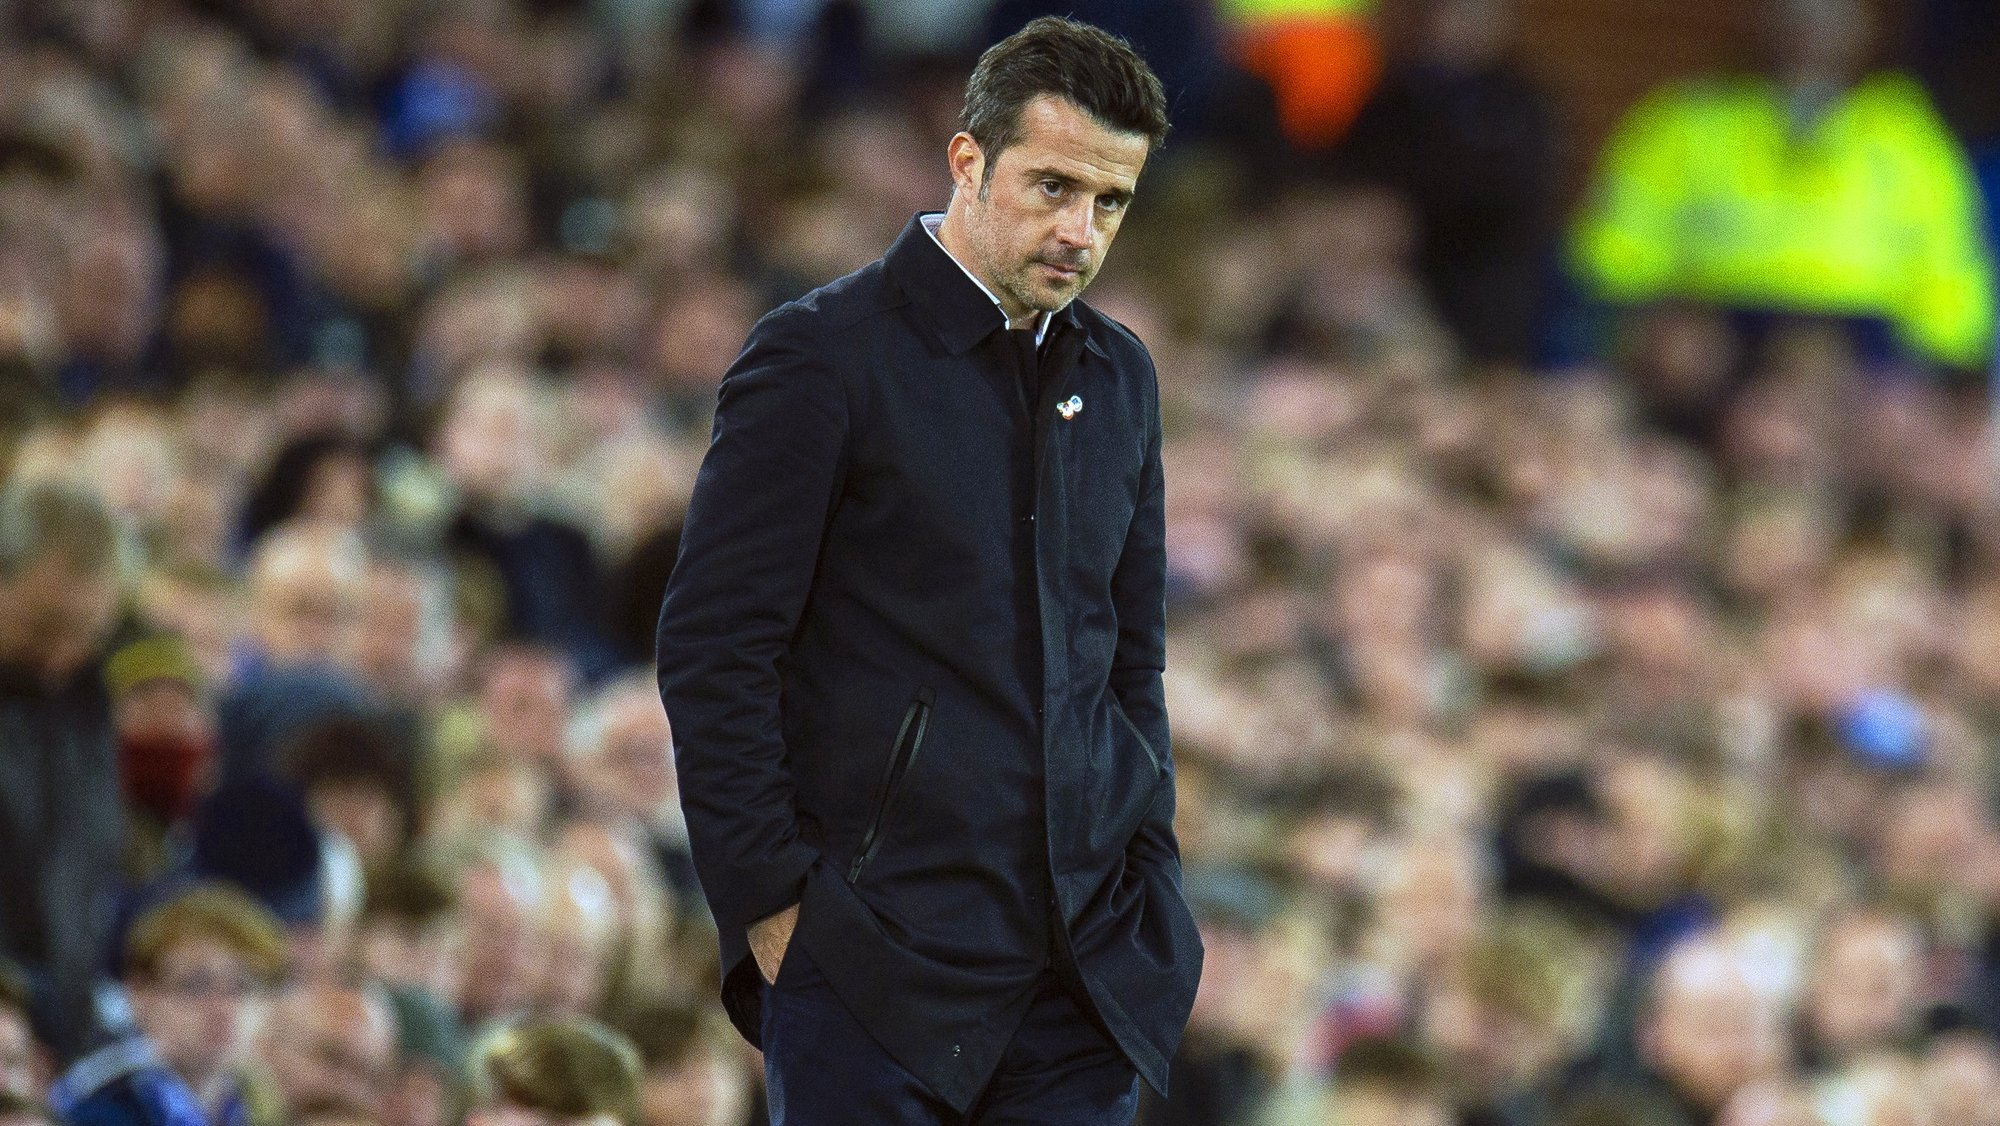 epa07970203 Everton's manager Marco Silva reacts during the English Premier League soccer match between Everton FC and Tottenham Hotspur at the Goodison Park in Liverpool, Britain, 03 November 2019.  EPA/PETER POWELL EDITORIAL USE ONLY. No use with unauthorized audio, video, data, fixture lists, club/league logos or 'live' services. Online in-match use limited to 120 images, no video emulation. No use in betting, games or single club/league/player publications